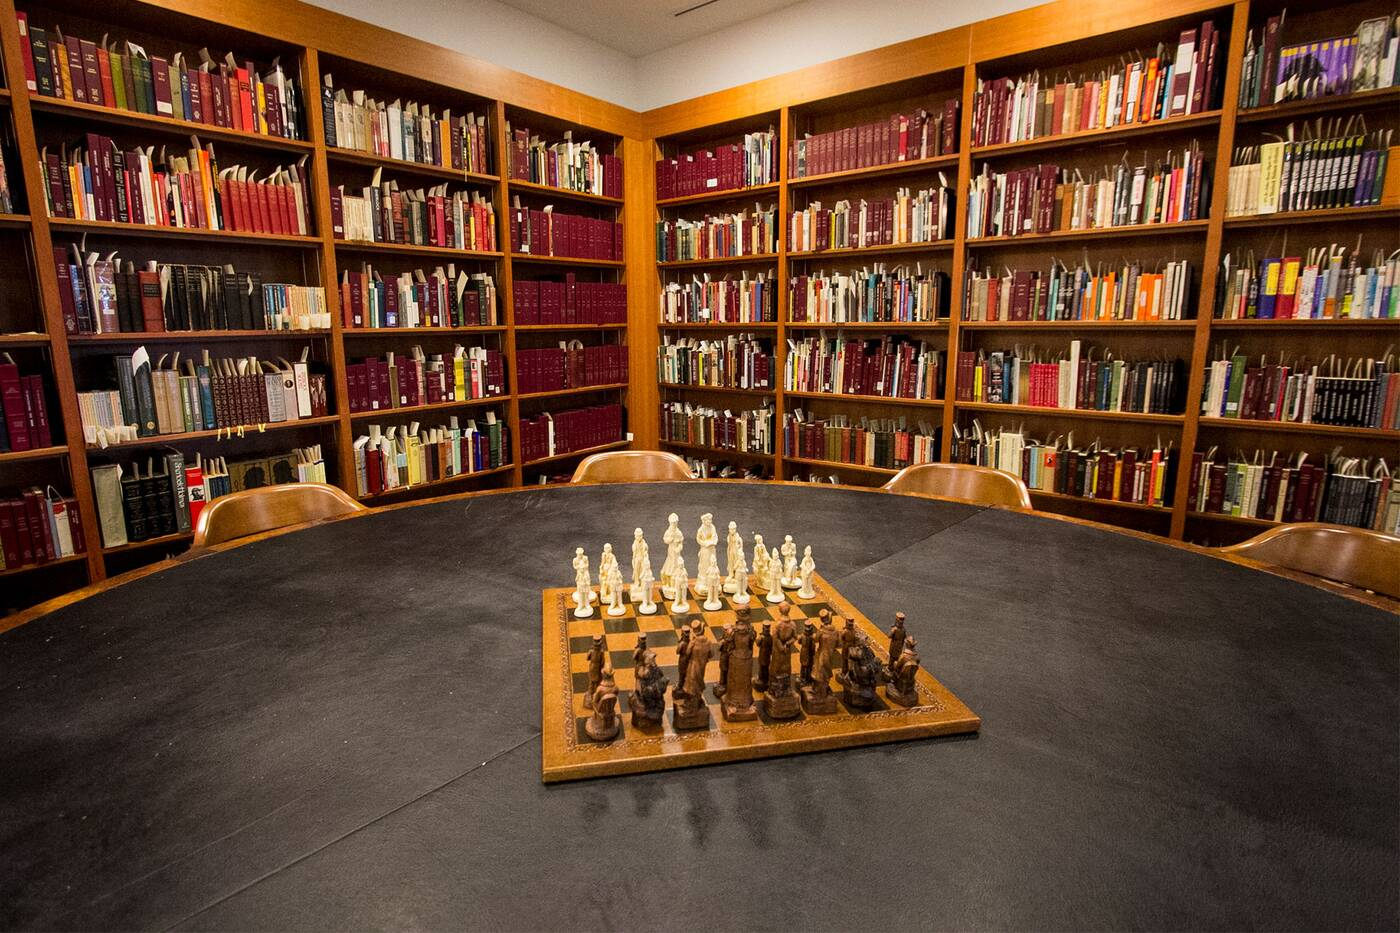 sherlock holmes room reference library